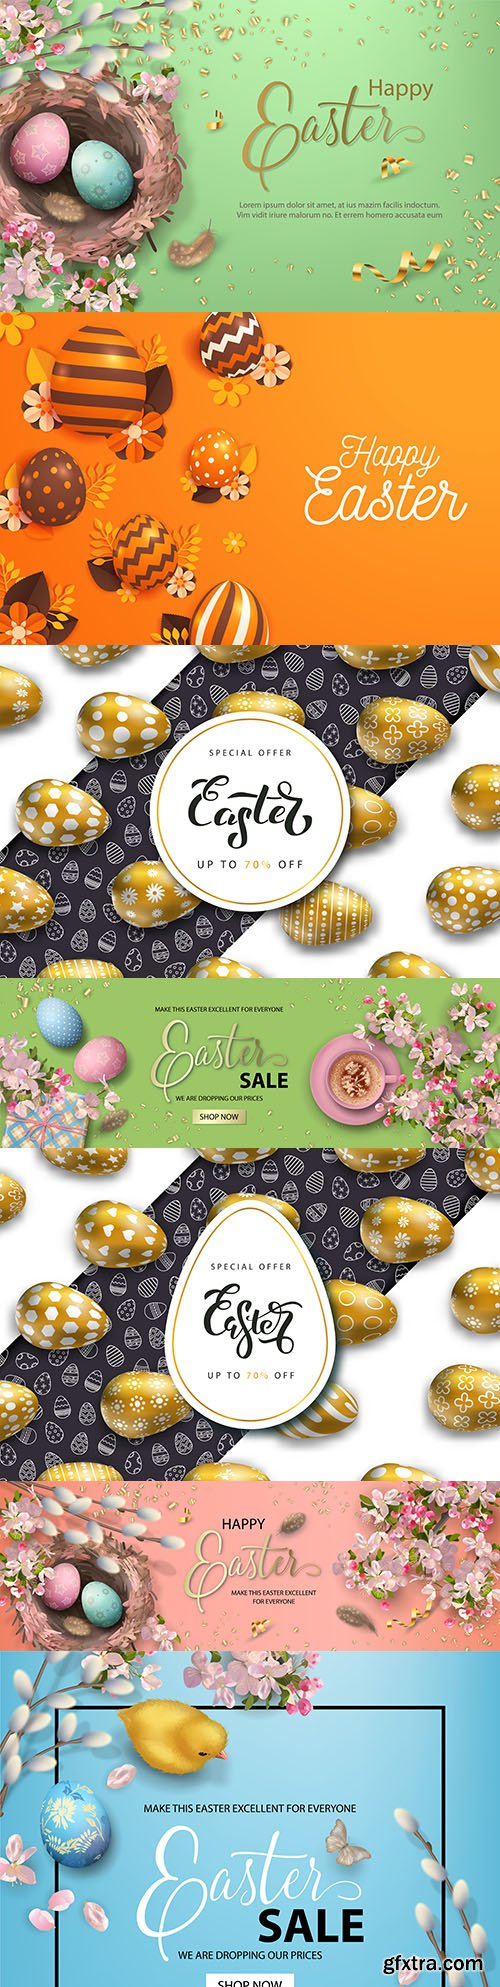 Happy Easter banners with golden eggs and flowers